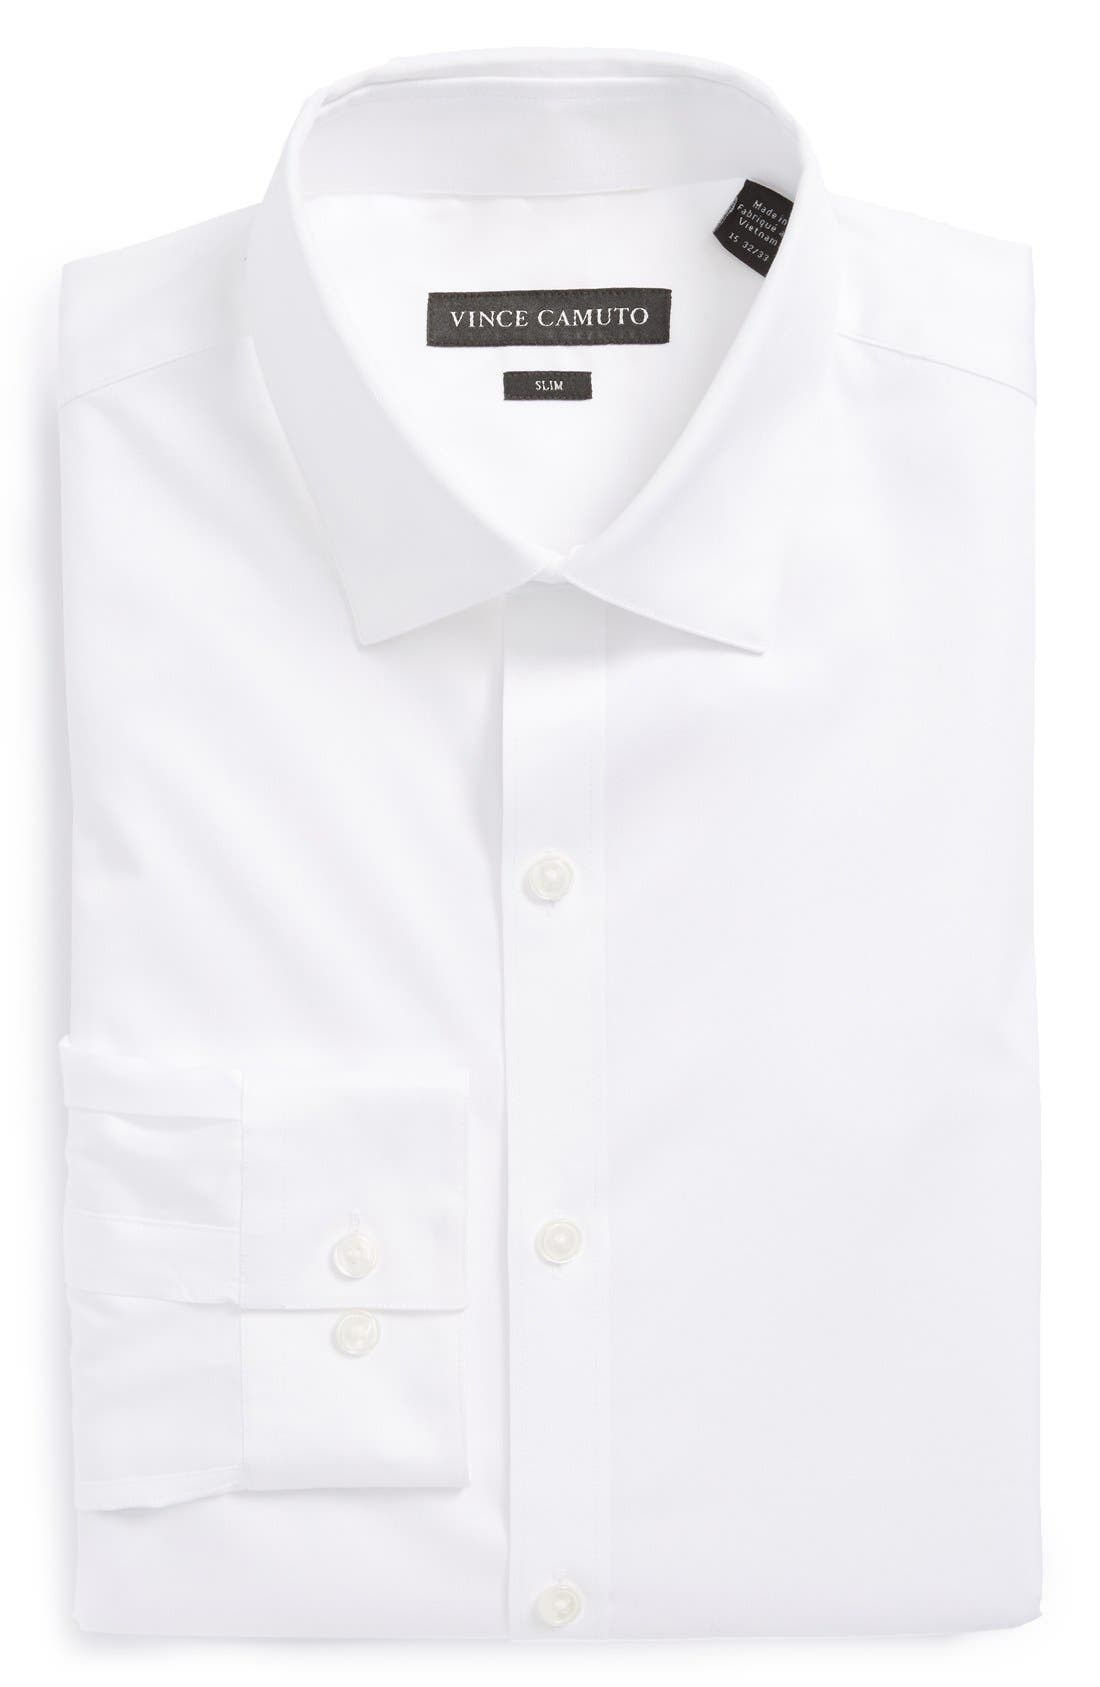 Main Image - Vince Camuto Slim Fit Solid Dress Shirt